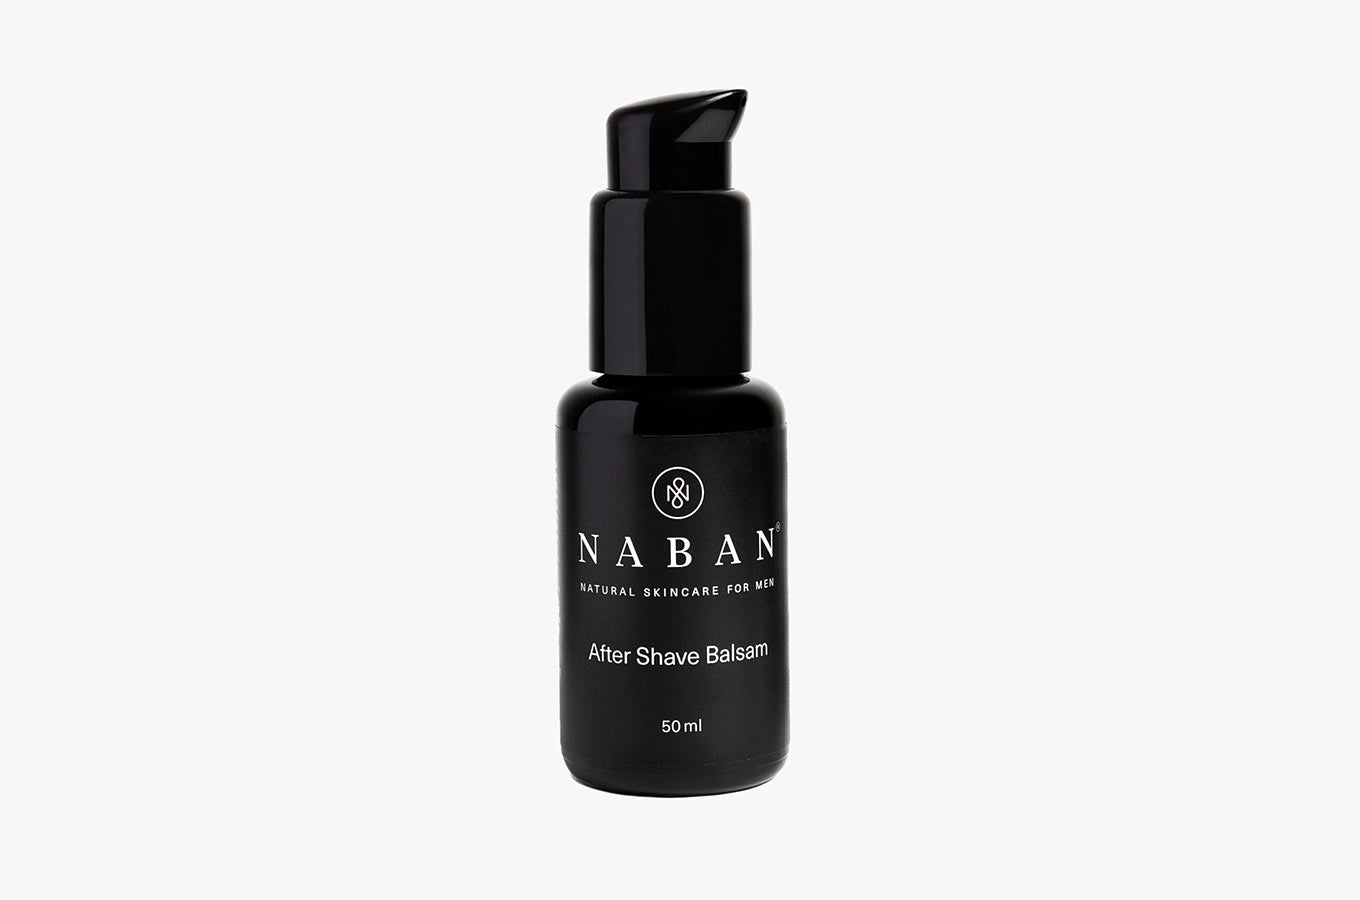 NABAN After Shave Balsam